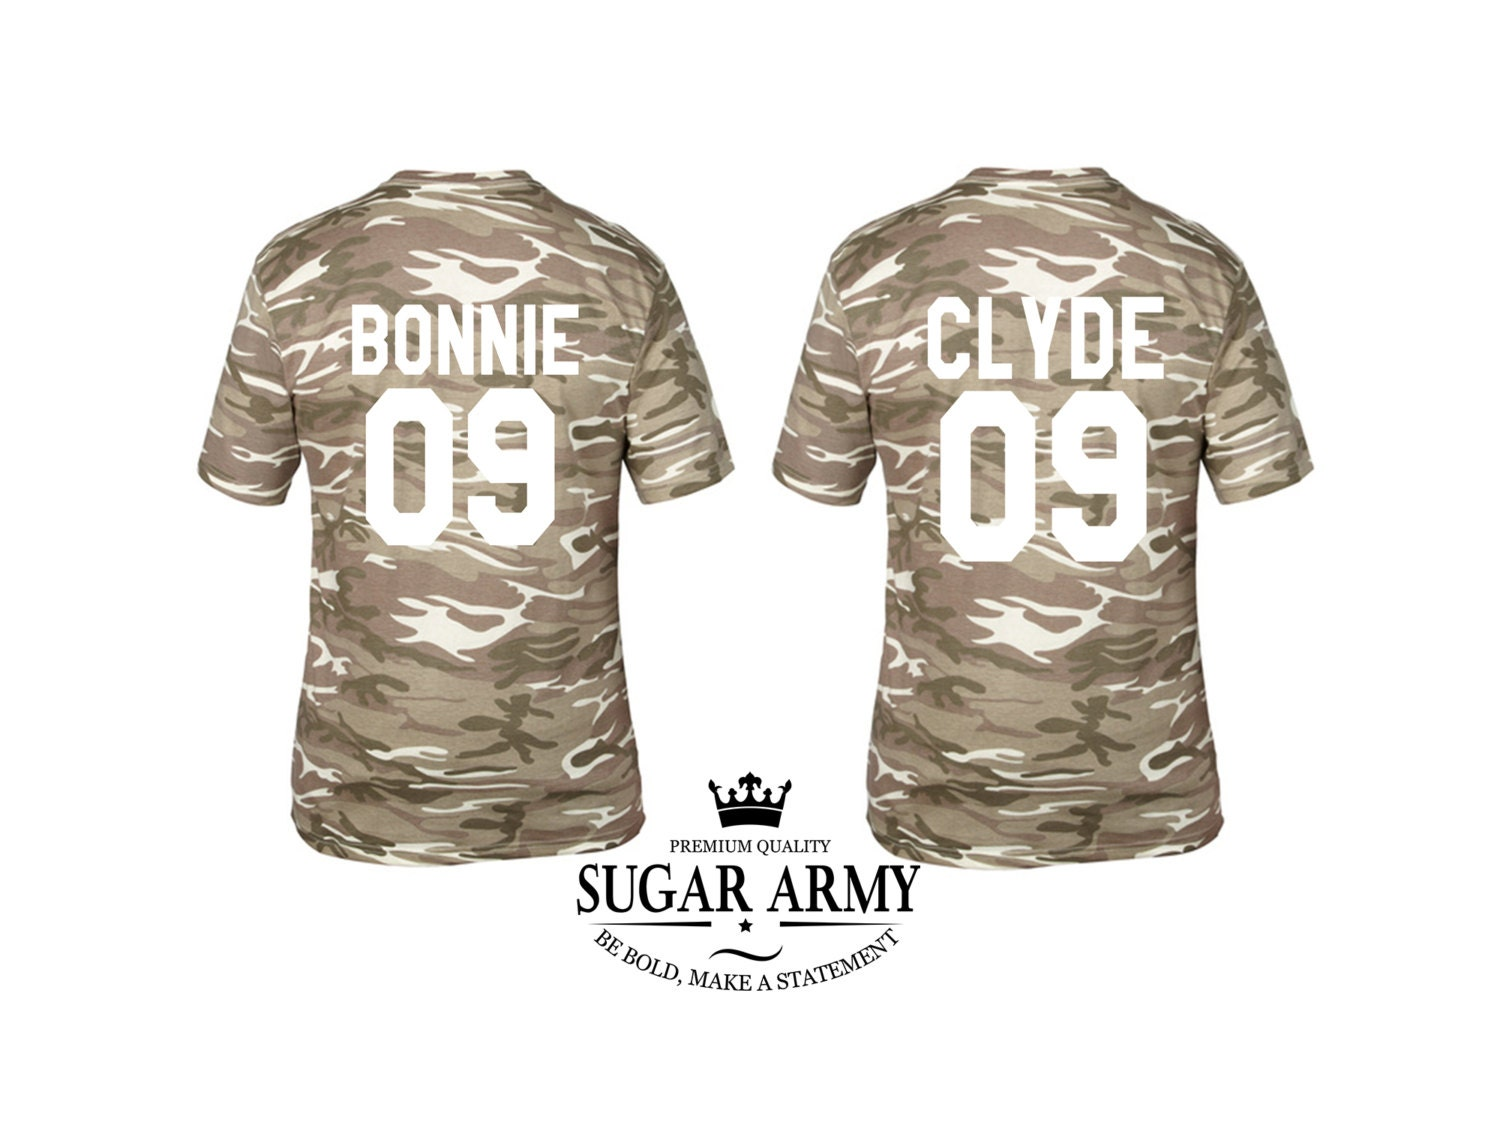 bonnie and clyde shirts couple matching shirts bonnie and. Black Bedroom Furniture Sets. Home Design Ideas